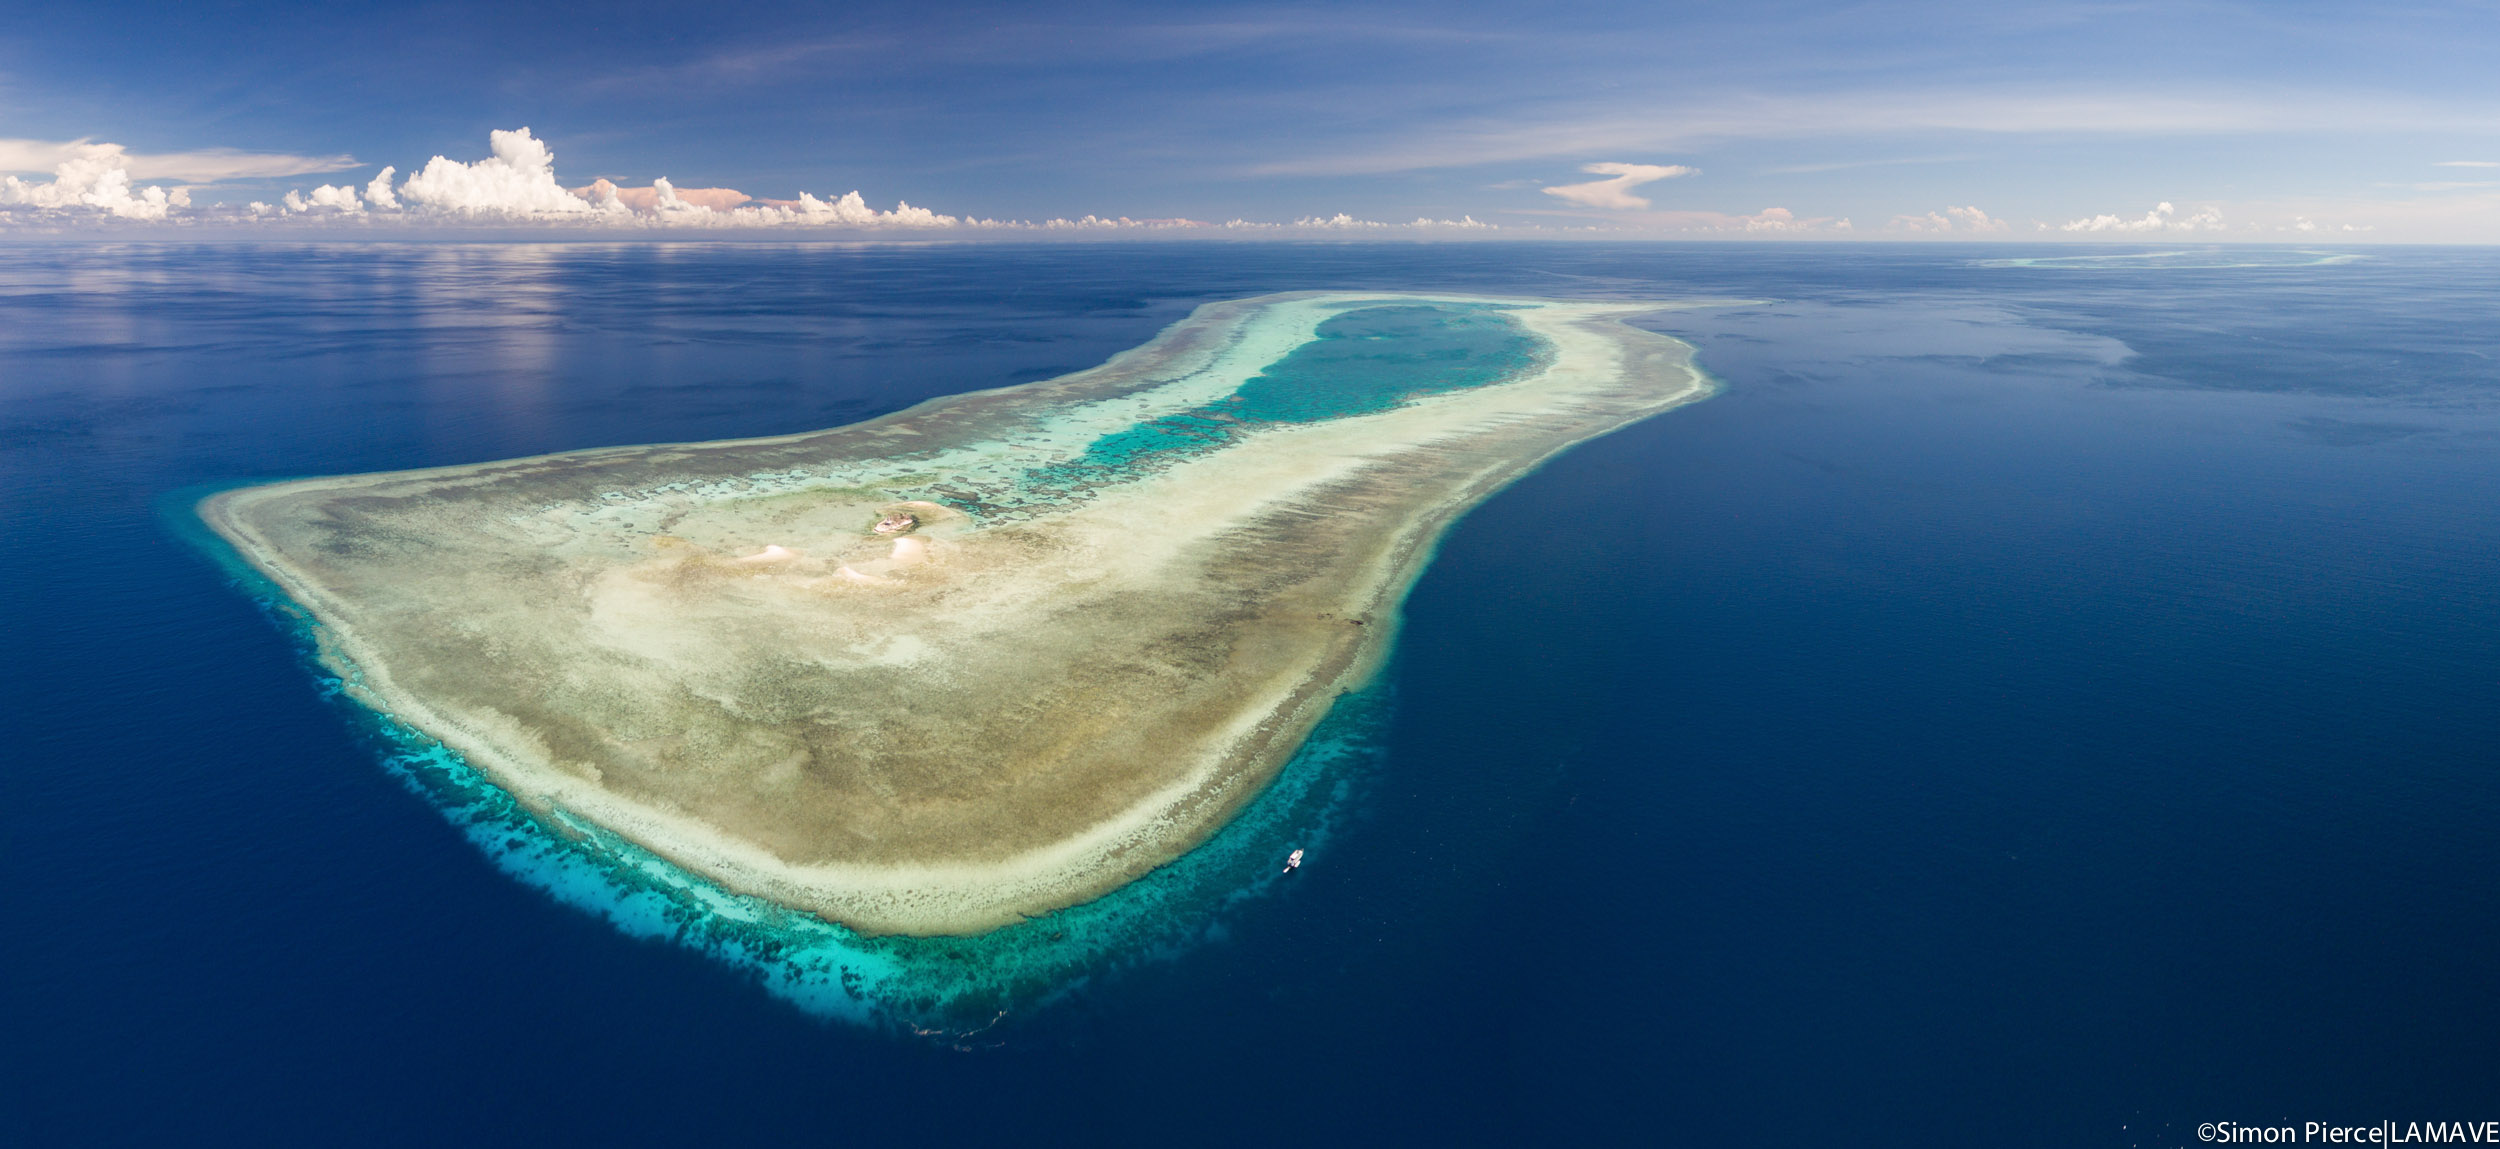 Photo 5. An aerial shot of the South Atoll in TRNP, which is located approximately 170 km east of Puerto Princesa. Credit: Simon Pierce|LAMAVE.